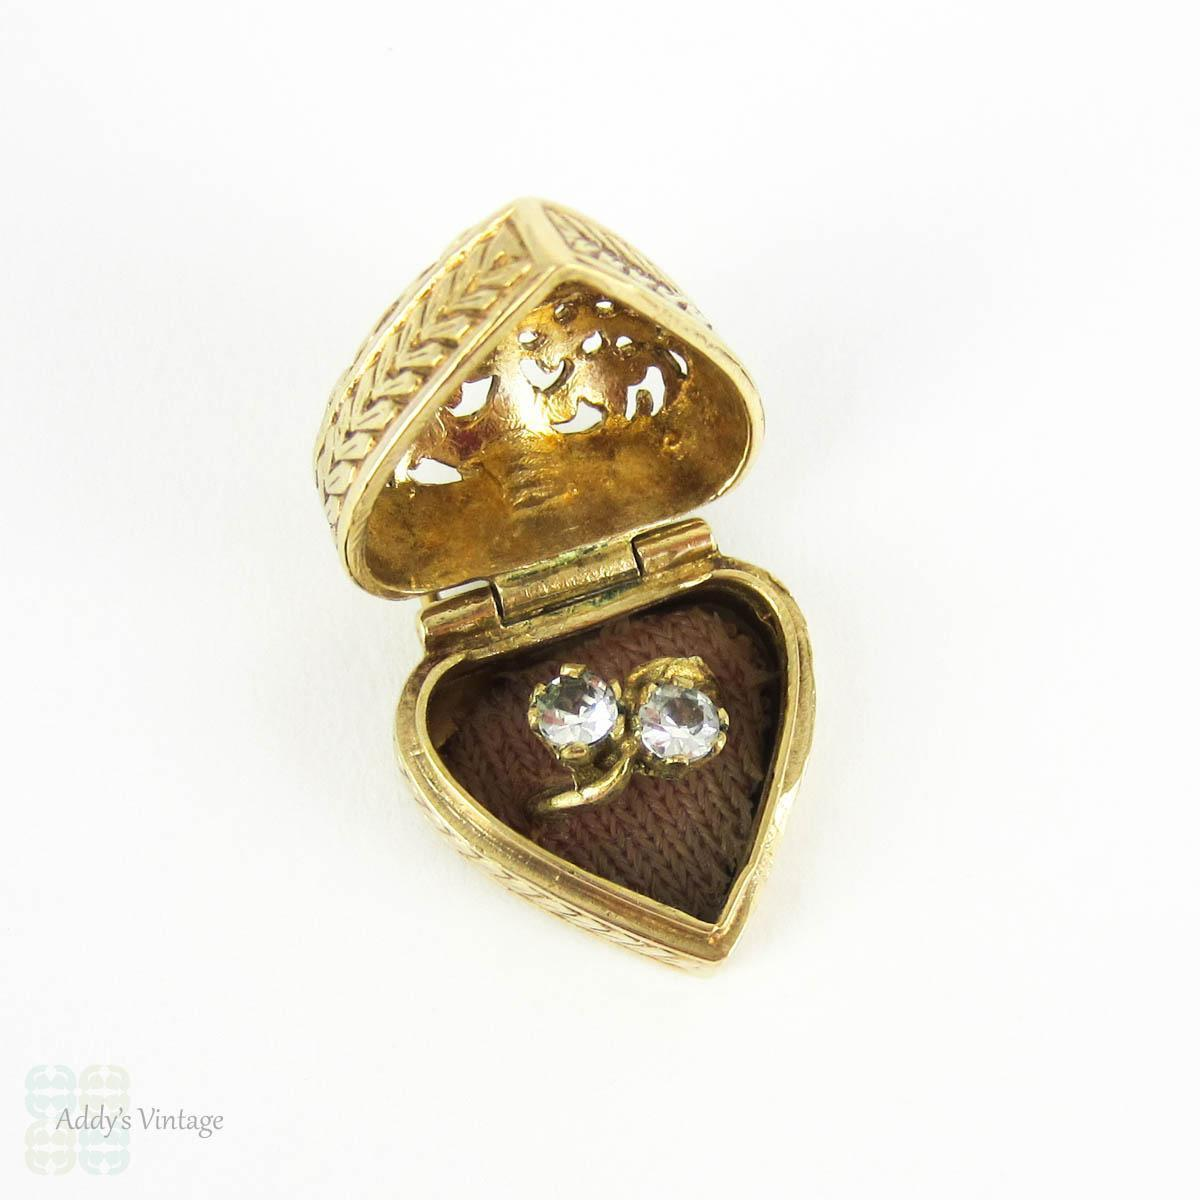 vintage heart ring box charm opens to reveal engagement